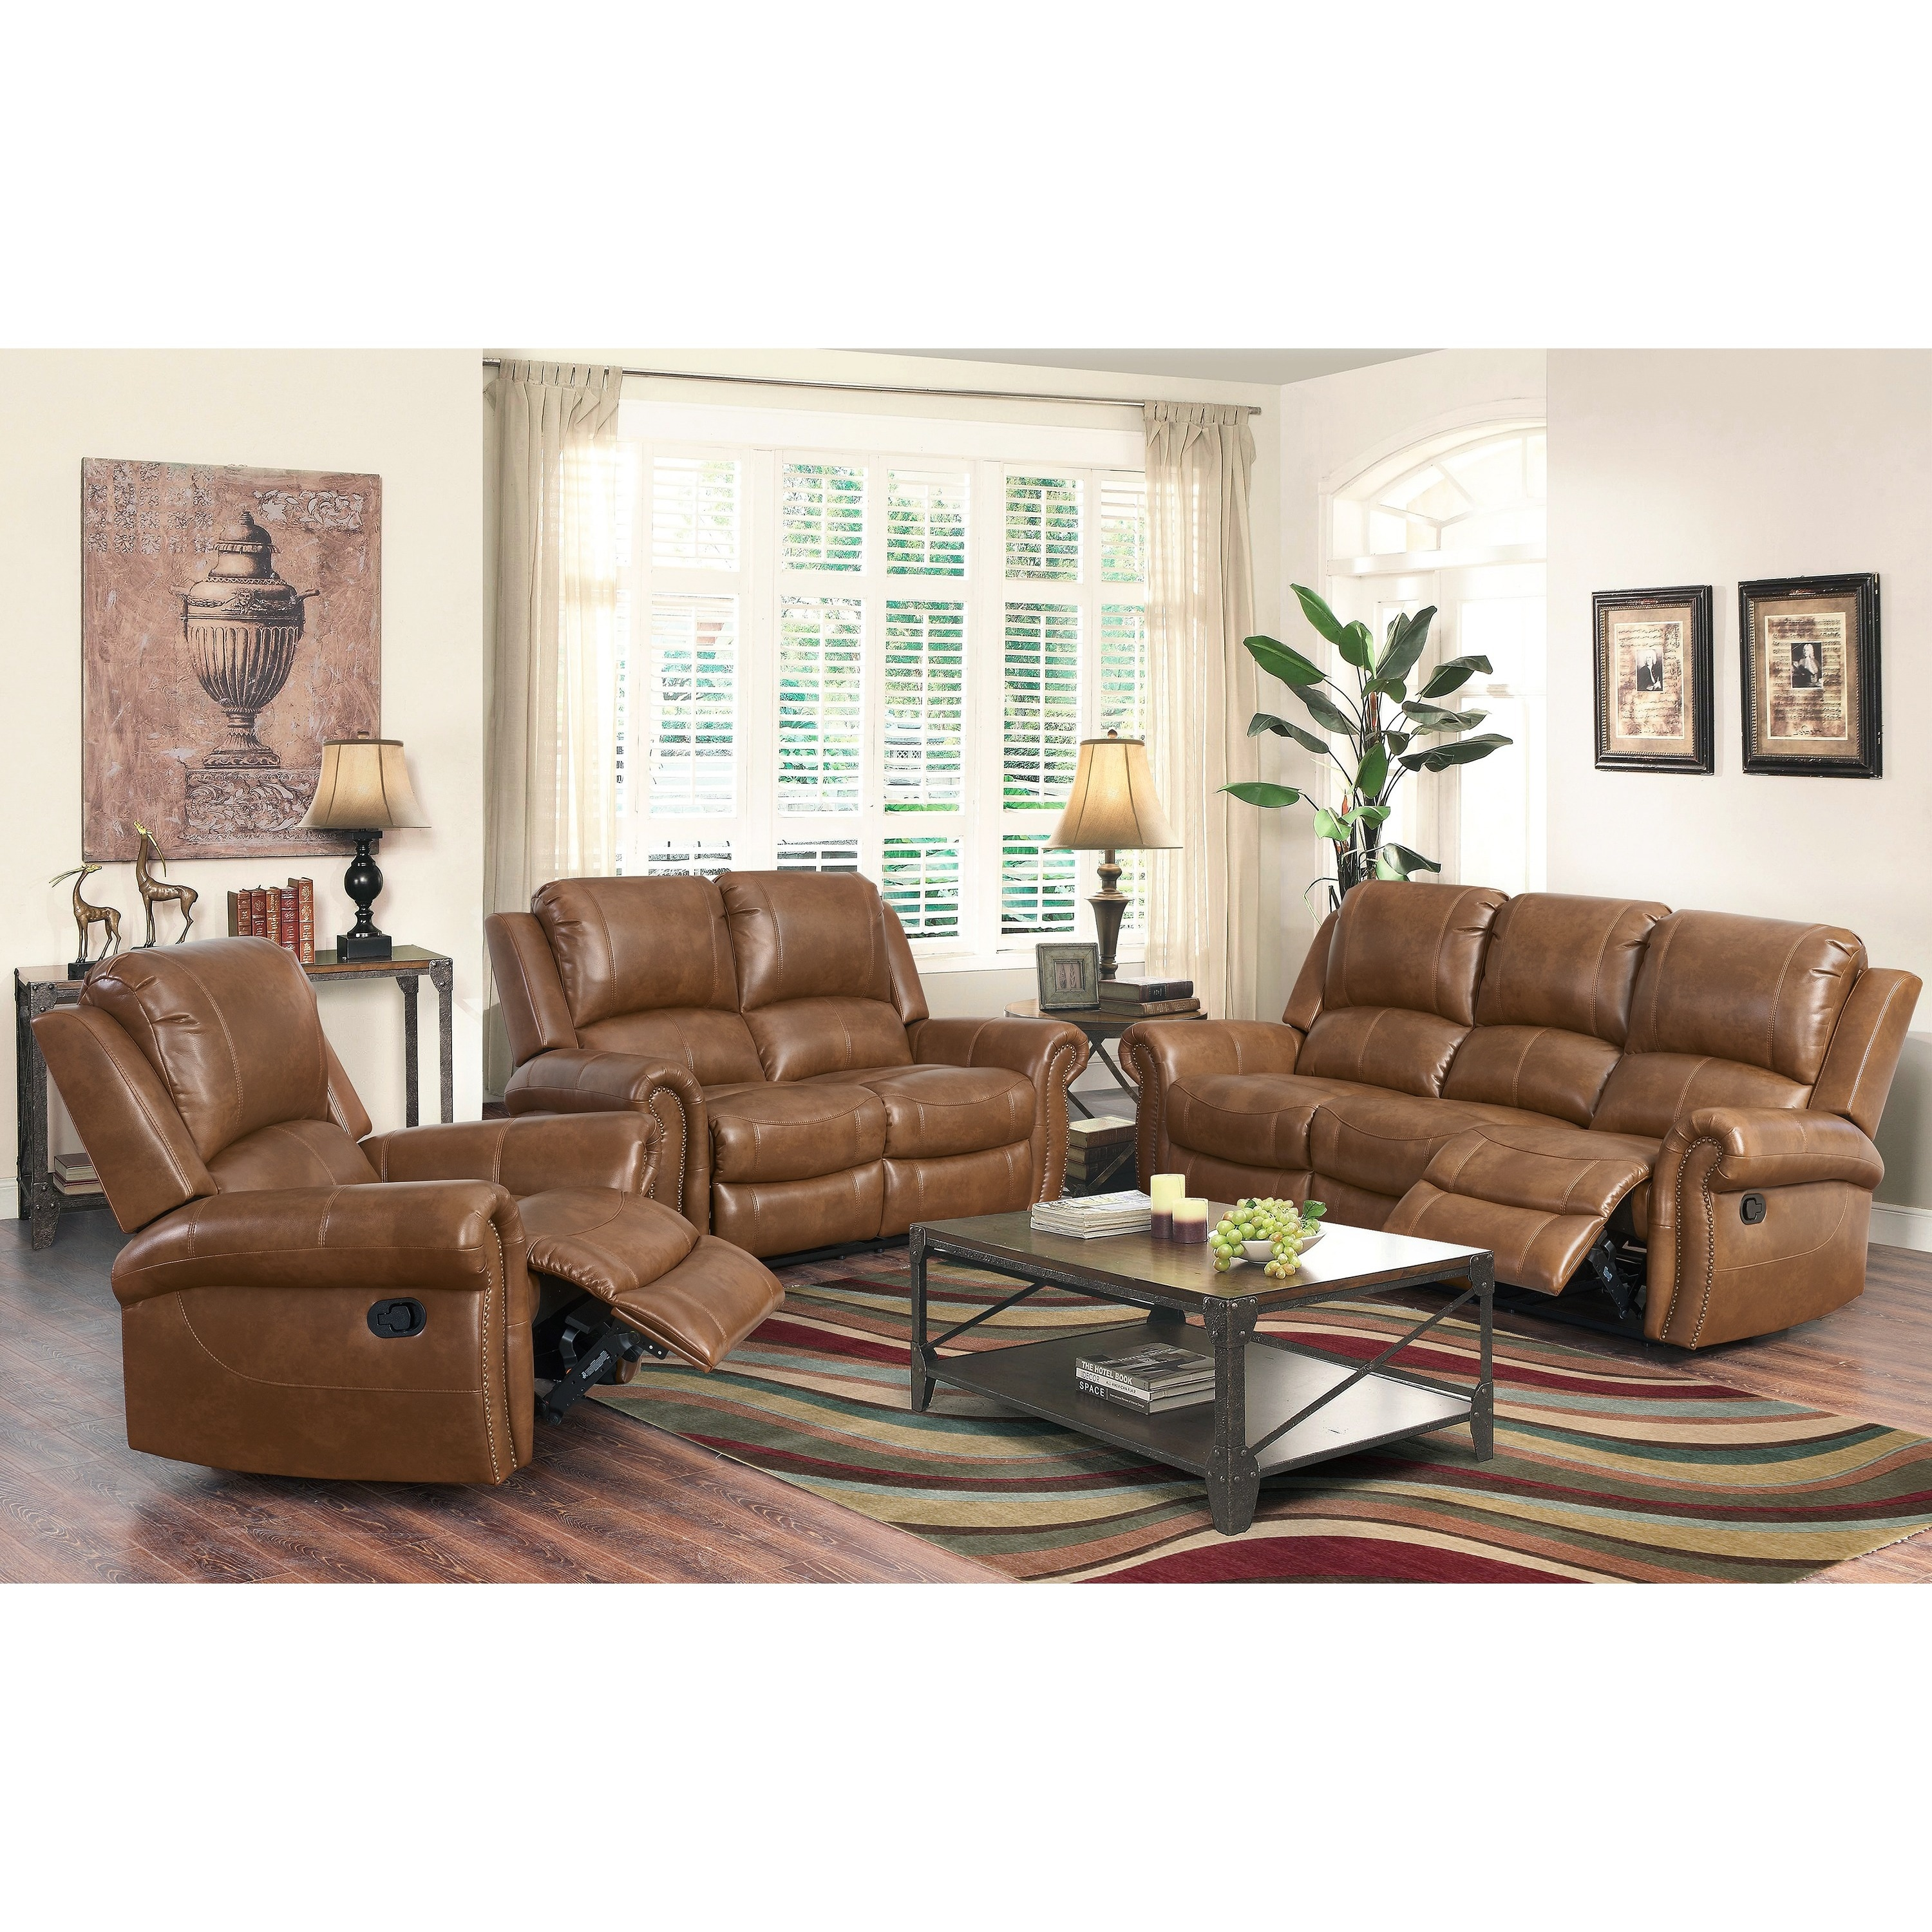 Abbyson Skyler Cognac 3 Piece Leather Reclining Set Free